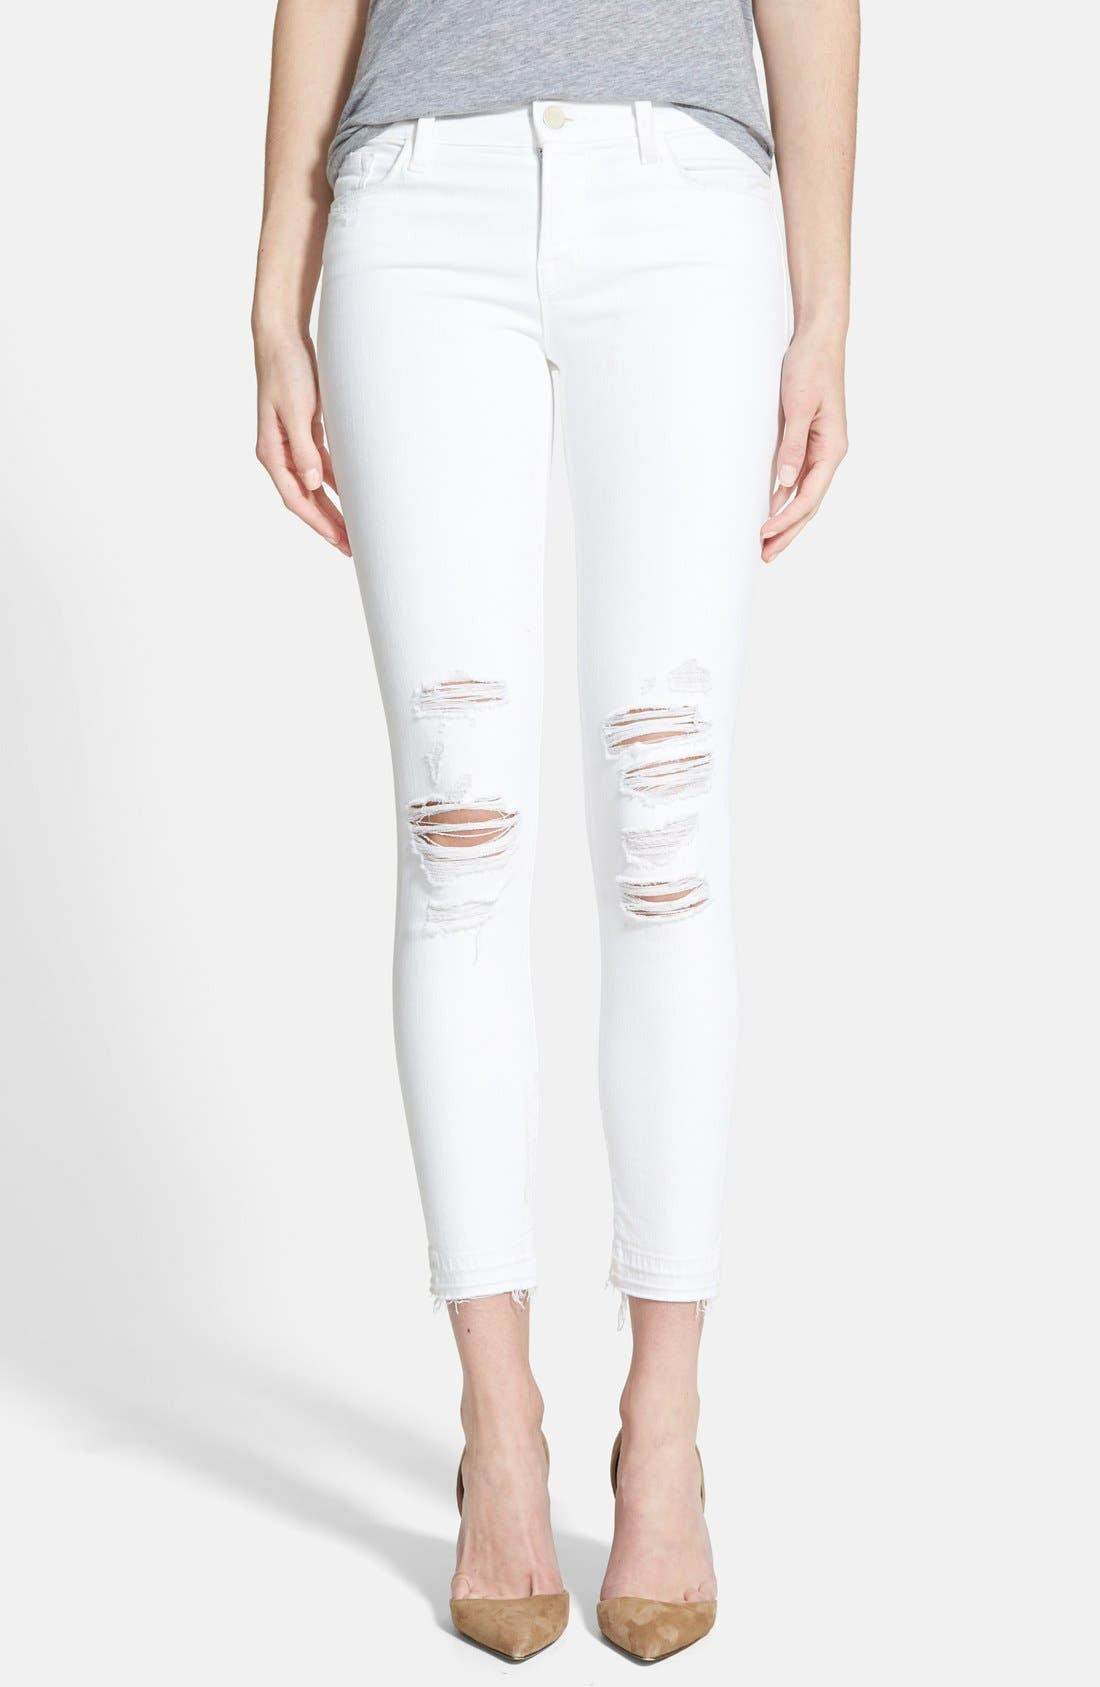 Alternate Image 1 Selected - J Brand 9326 Low Rise Crop Skinny Jeans (Destructed White Sateen Demented)